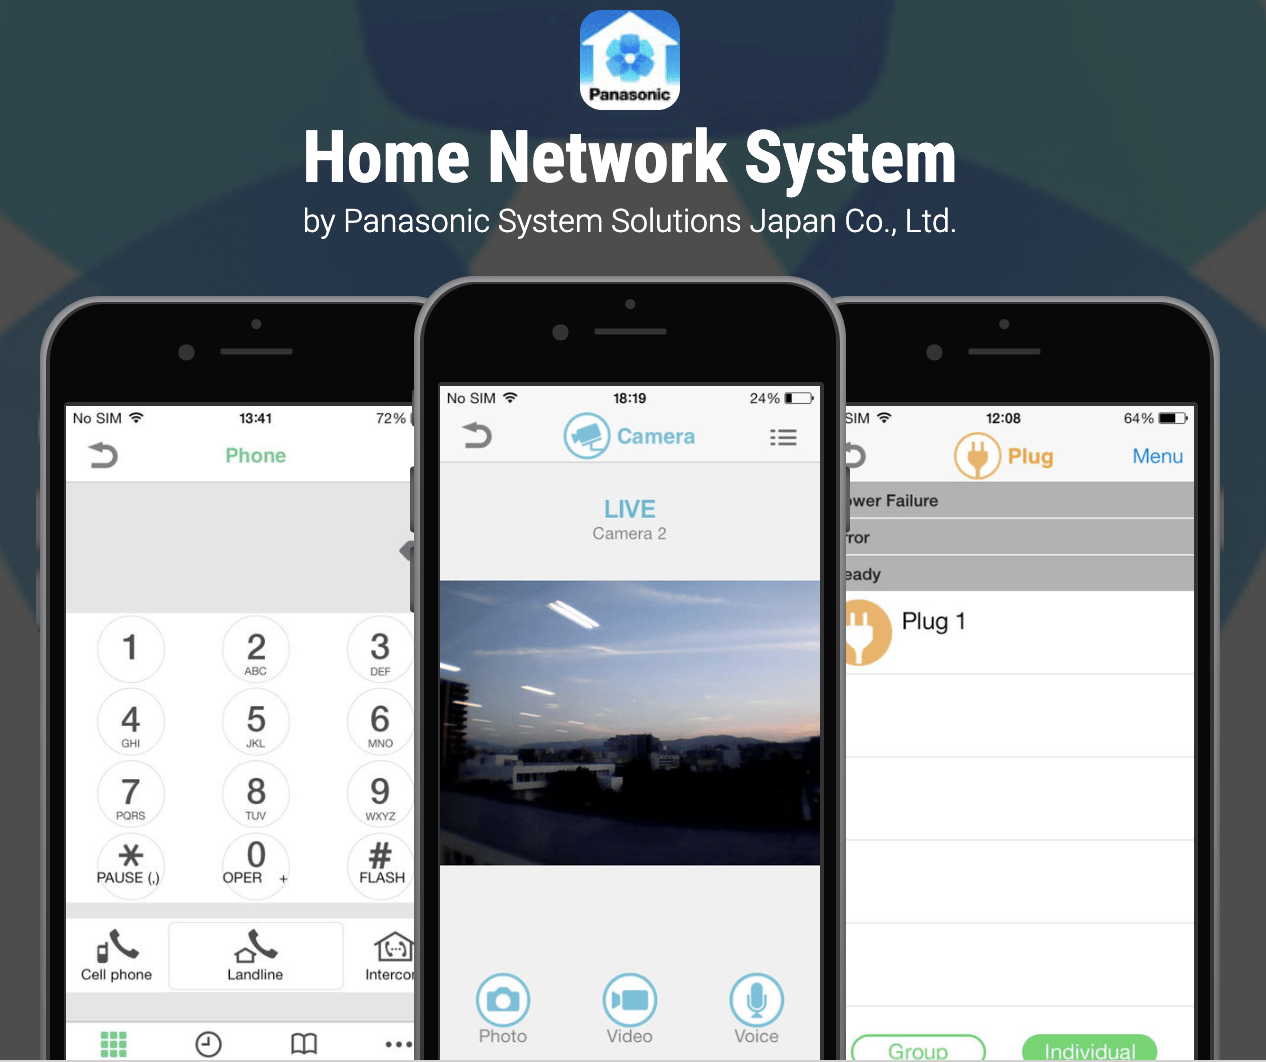 Home Network System